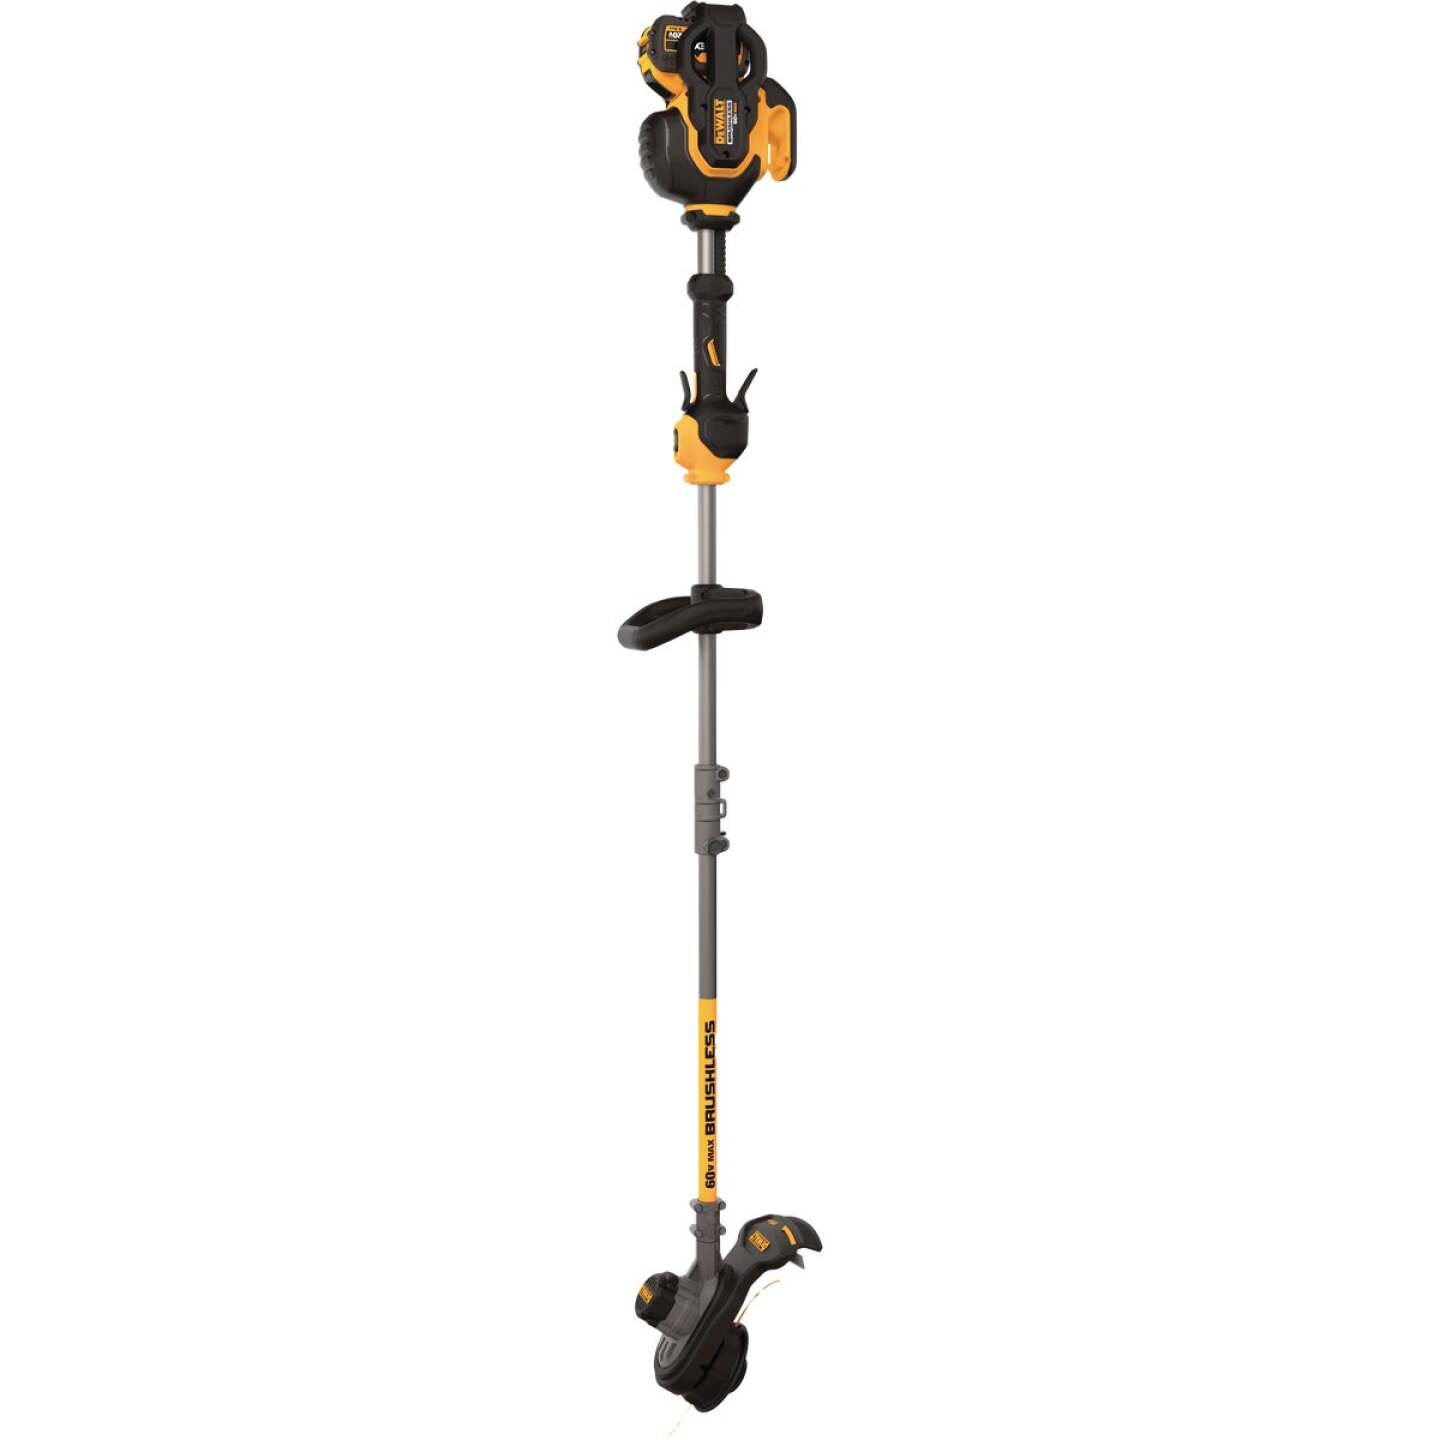 DeWalt Flexvolt 60V Max 15 In. Lithium Ion Straight Cordless String Trimmer Image 3